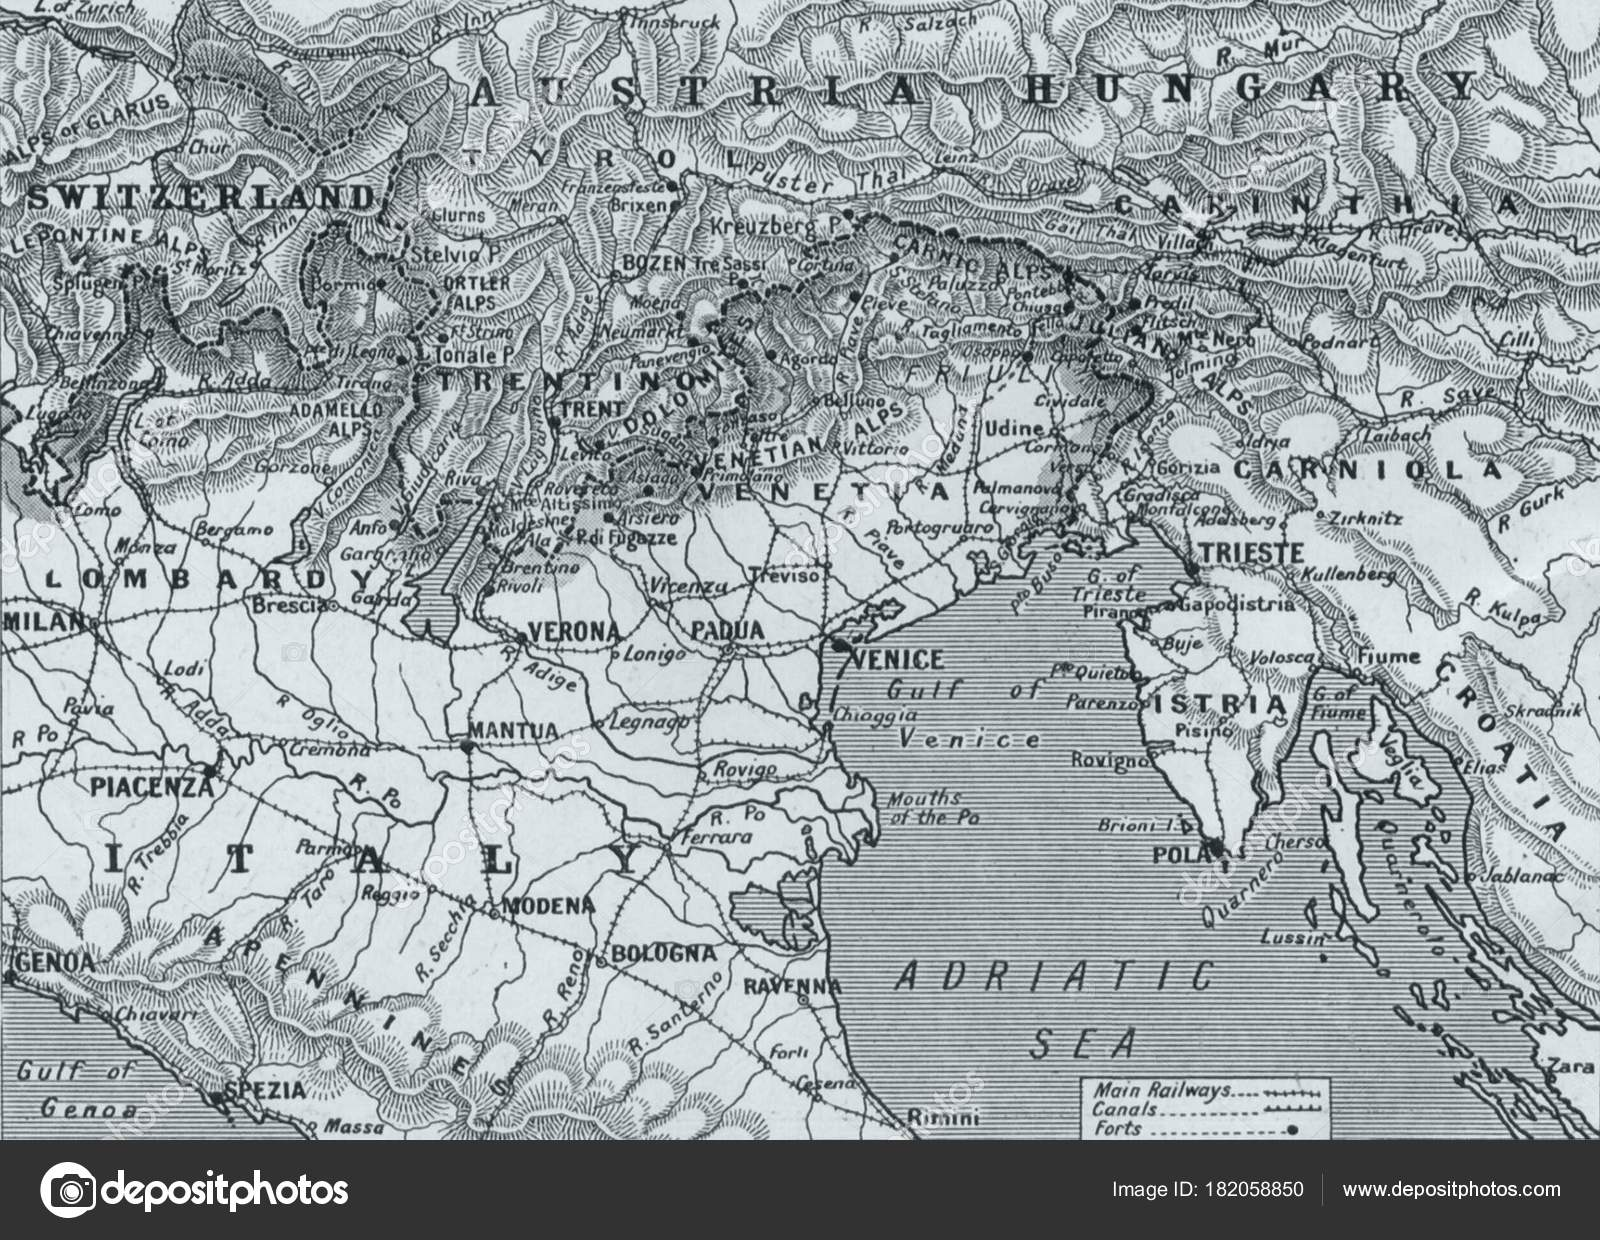 Map Of Northern Italy And Austria.Map Austria Hungary Northern Italy Adriatic Sea Stock Editorial